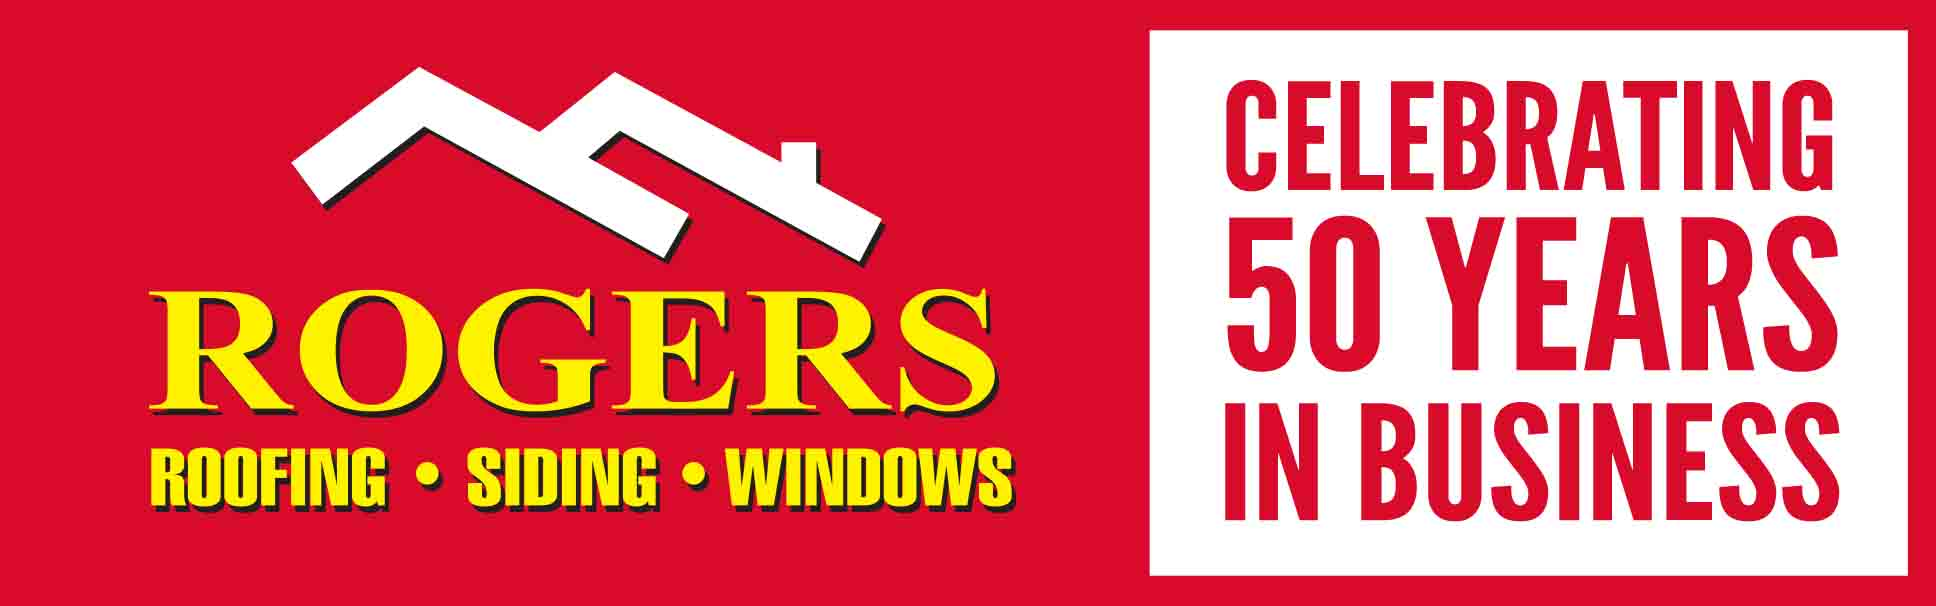 Rogers Roofing 50 Years In Business